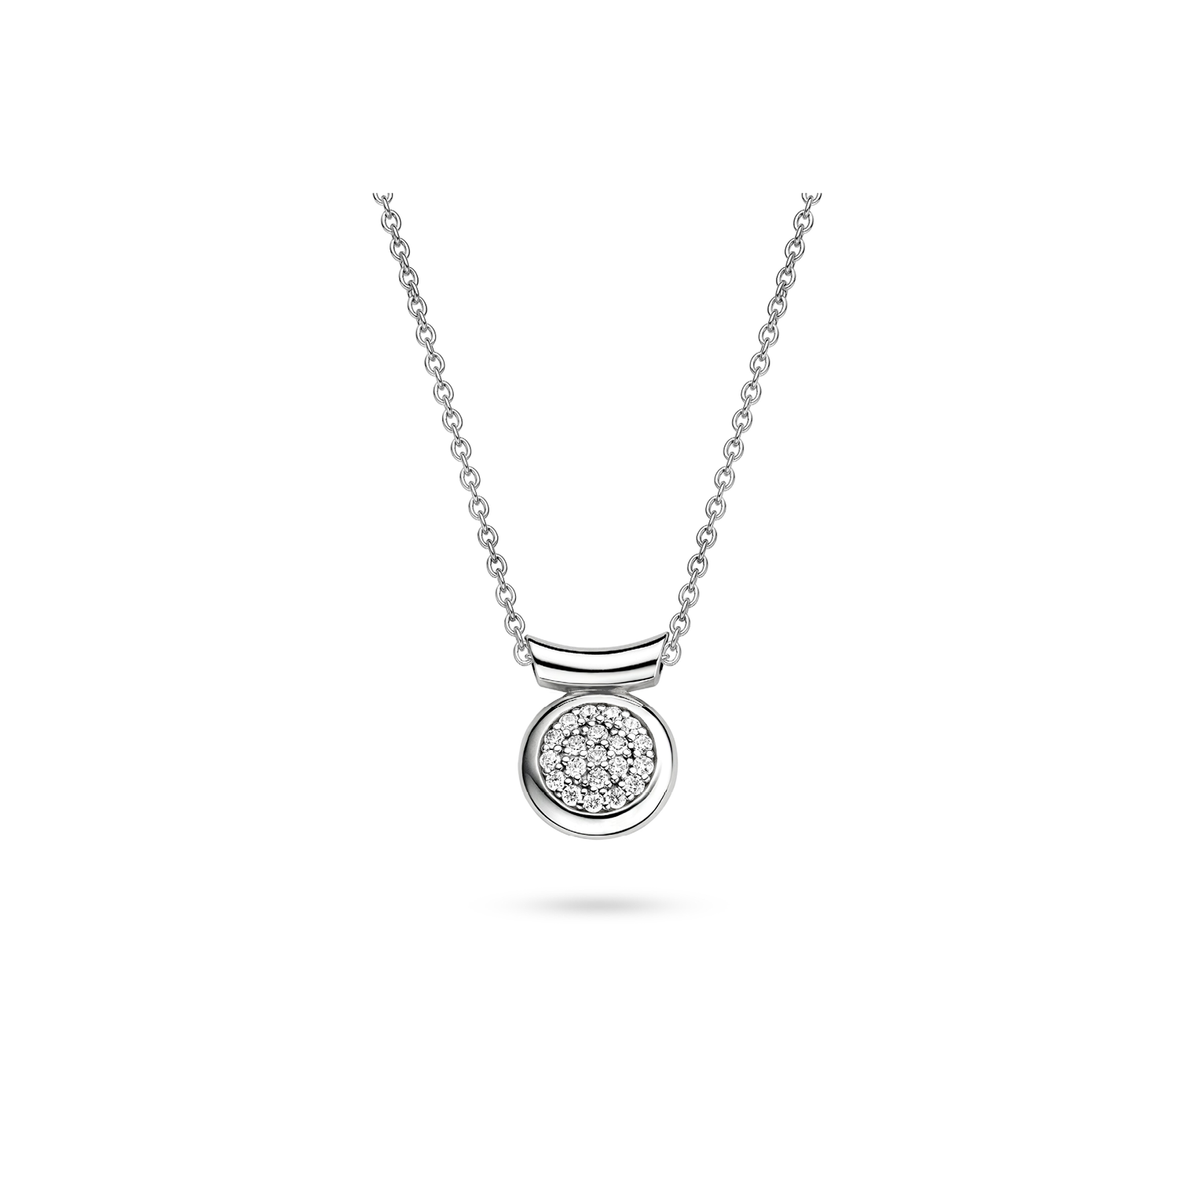 TI SENTO - Milano Necklace 3758ZI